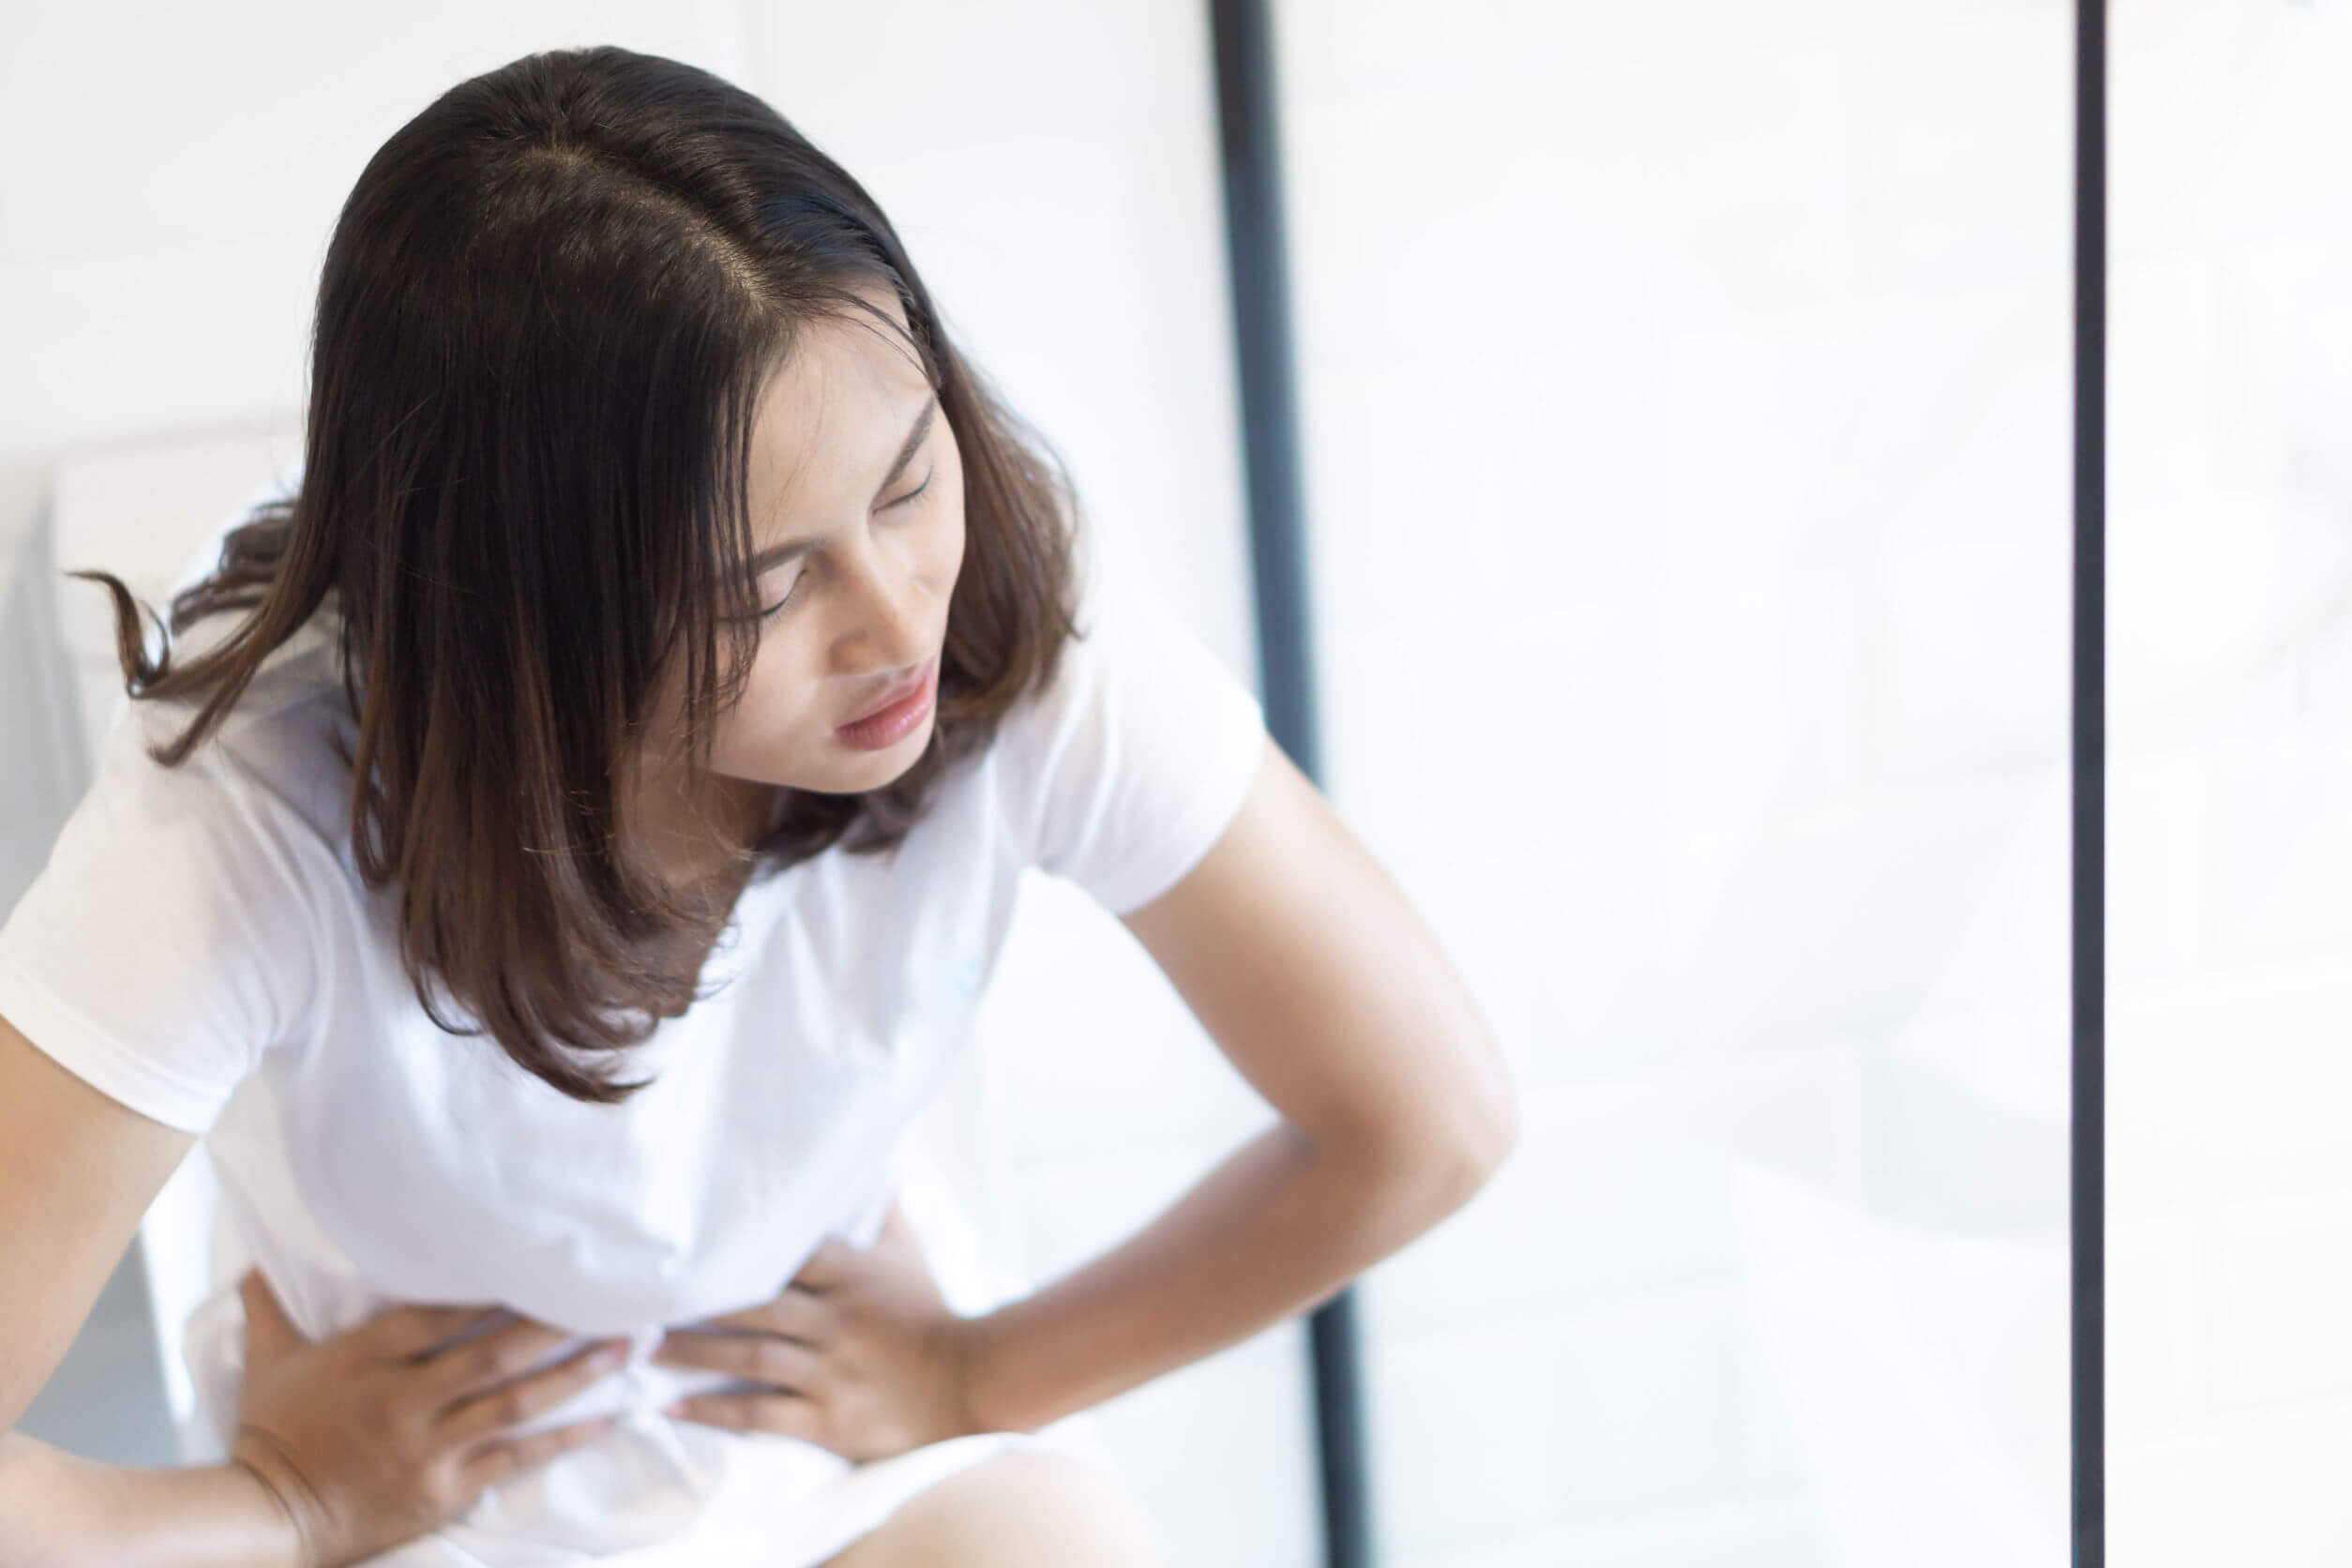 Cystitis is more common in women.